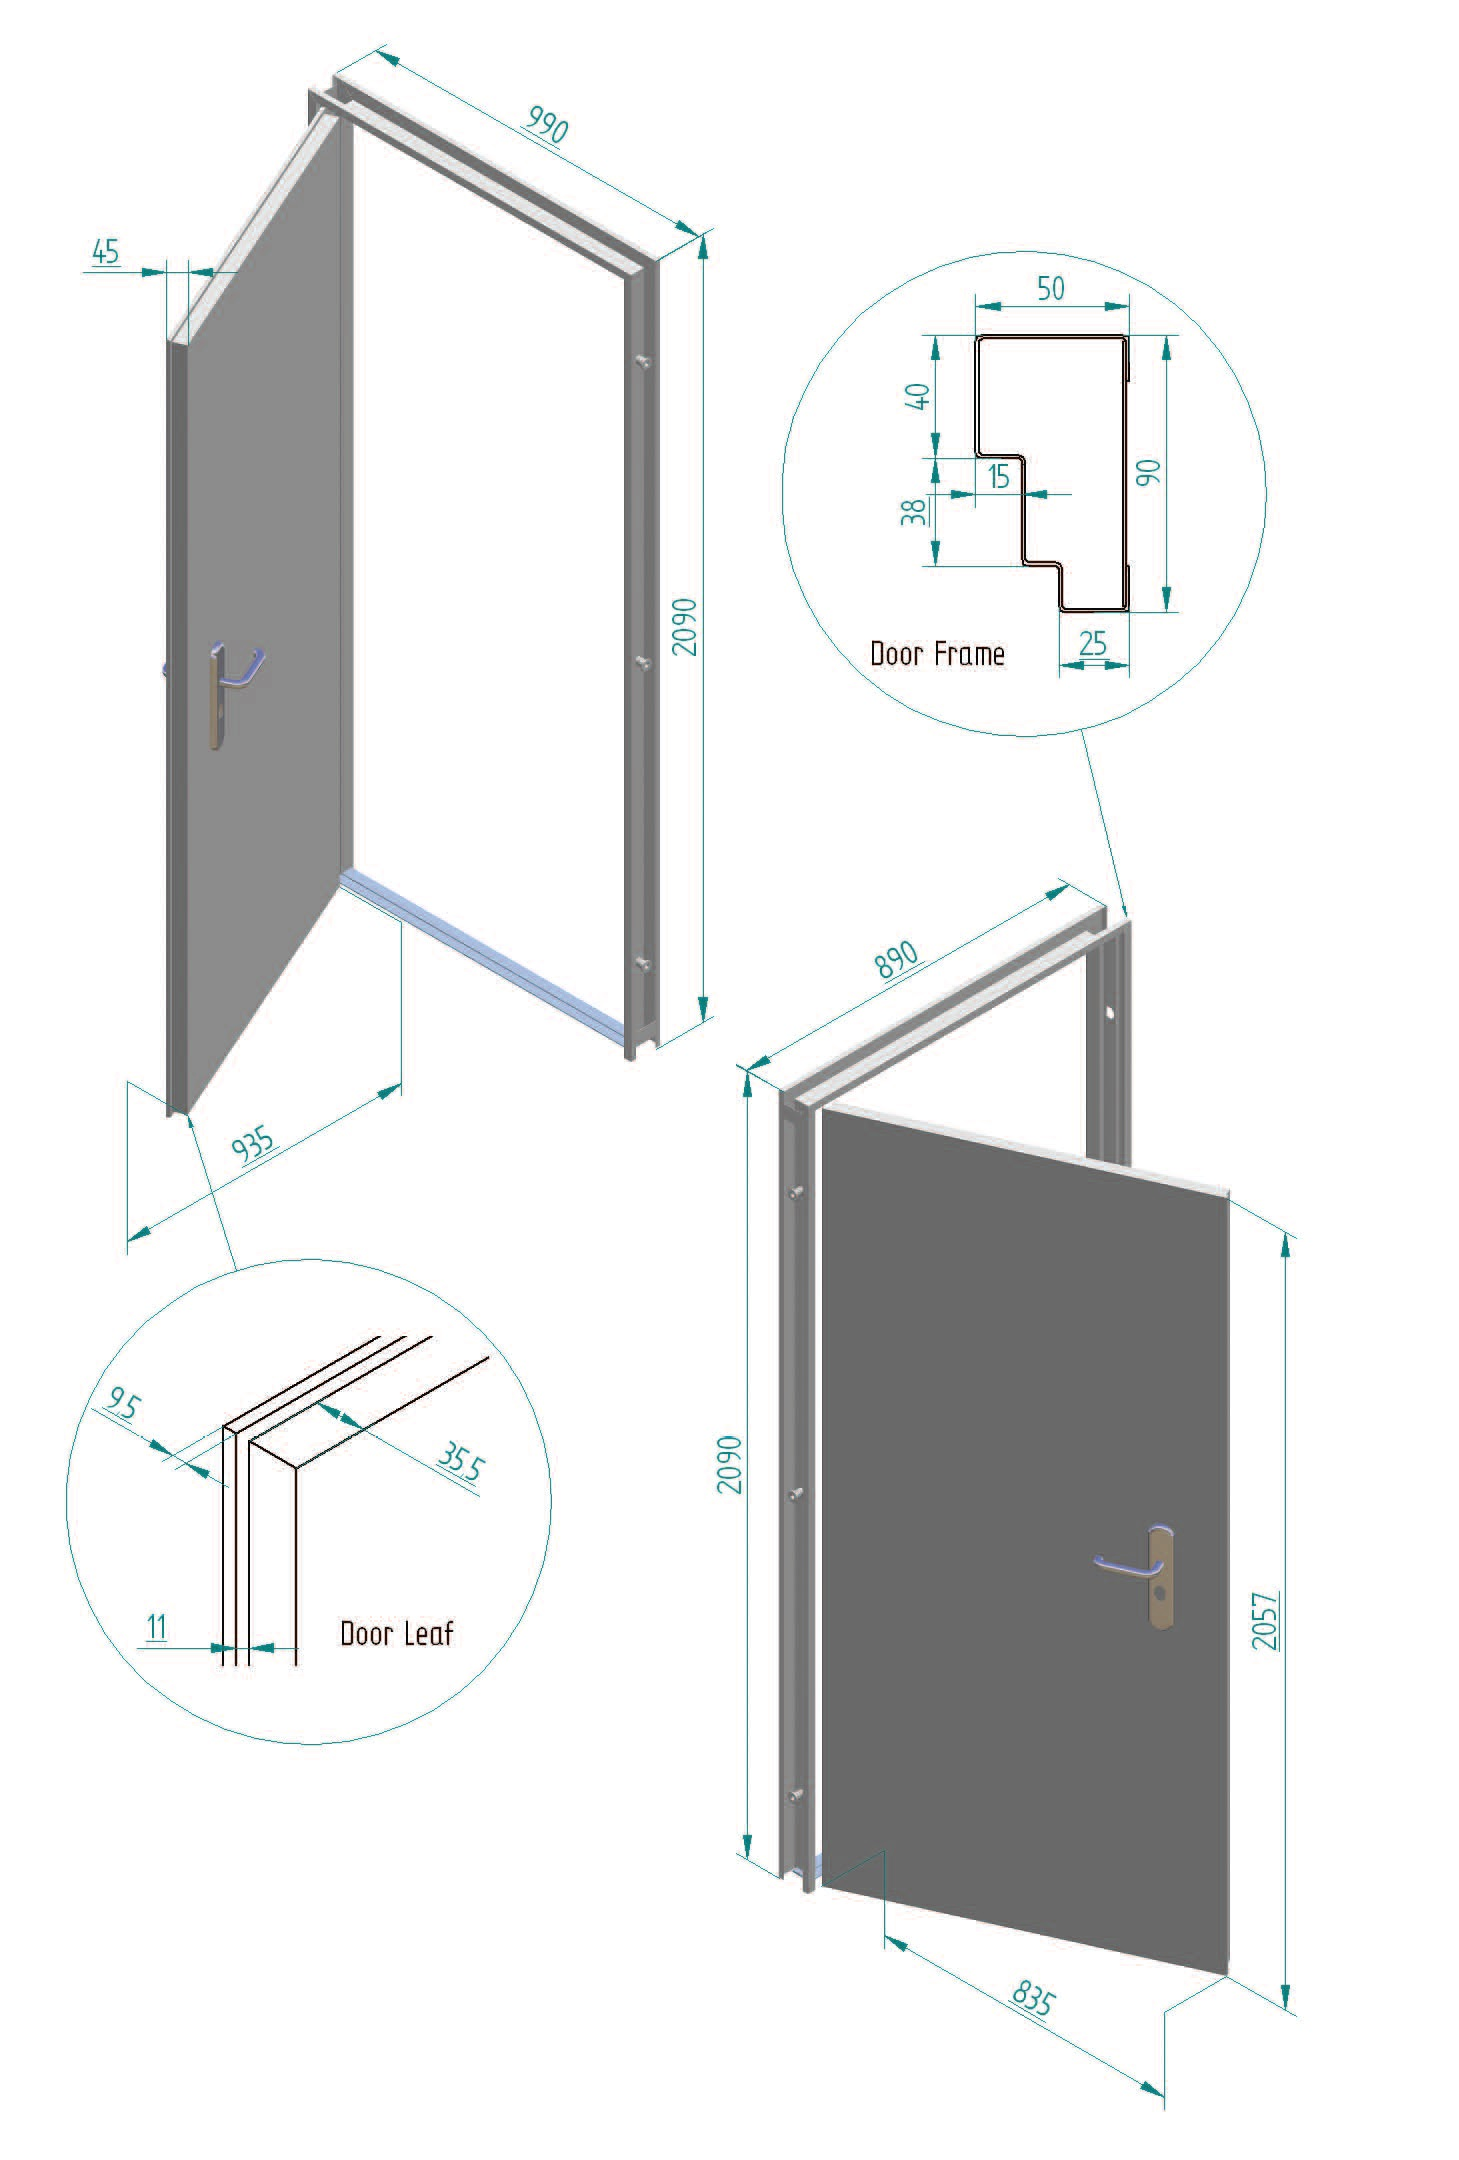 hight resolution of fire and security door dimensions installation instructions for fire and security doors